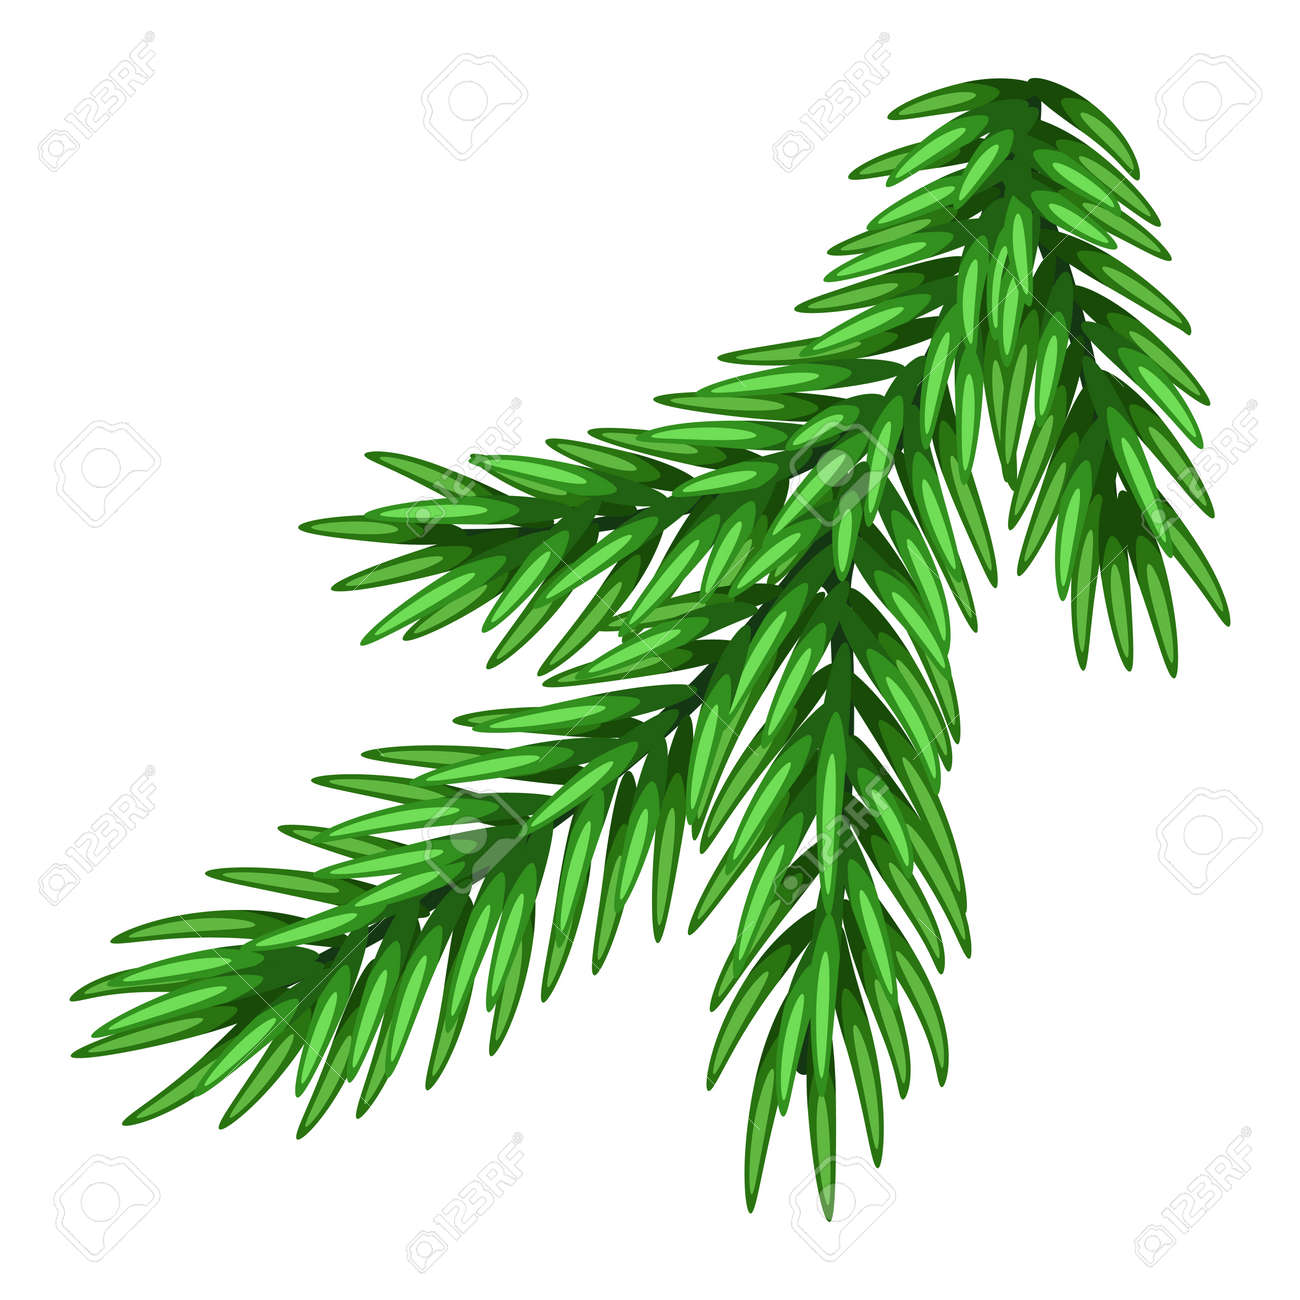 Illustration of spruce branch. Merry Christmas or Happy New Year decoration. - 154208376